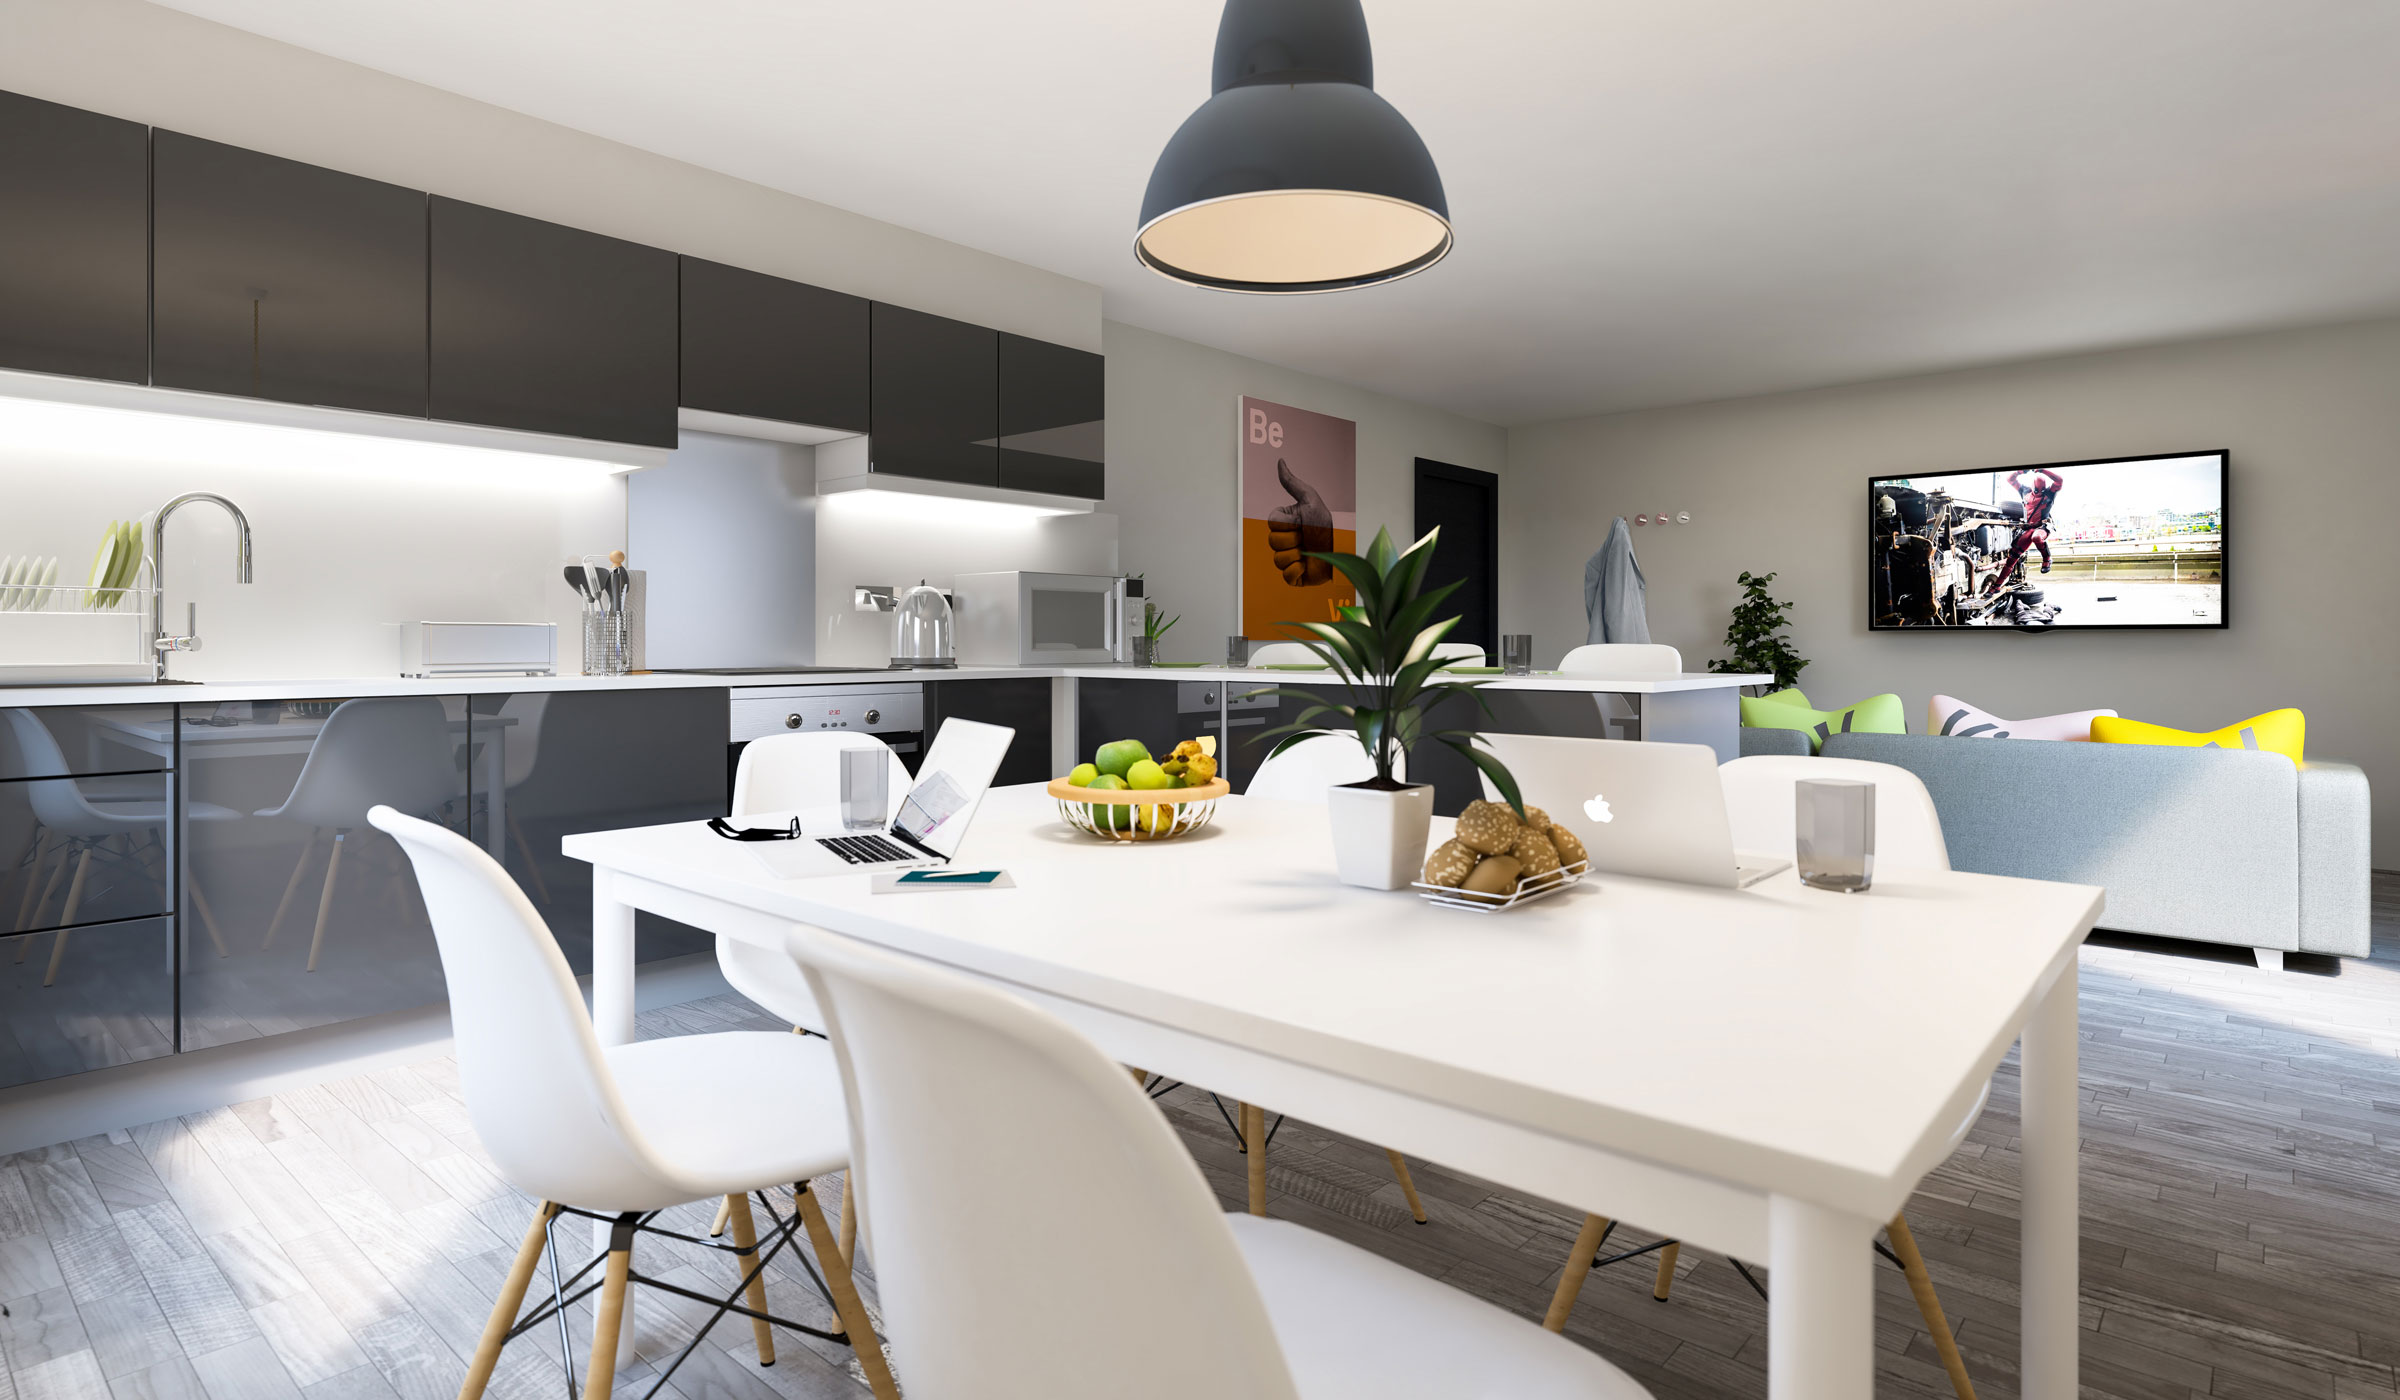 Vibe student accommodation en-suite shared kitchen and living room